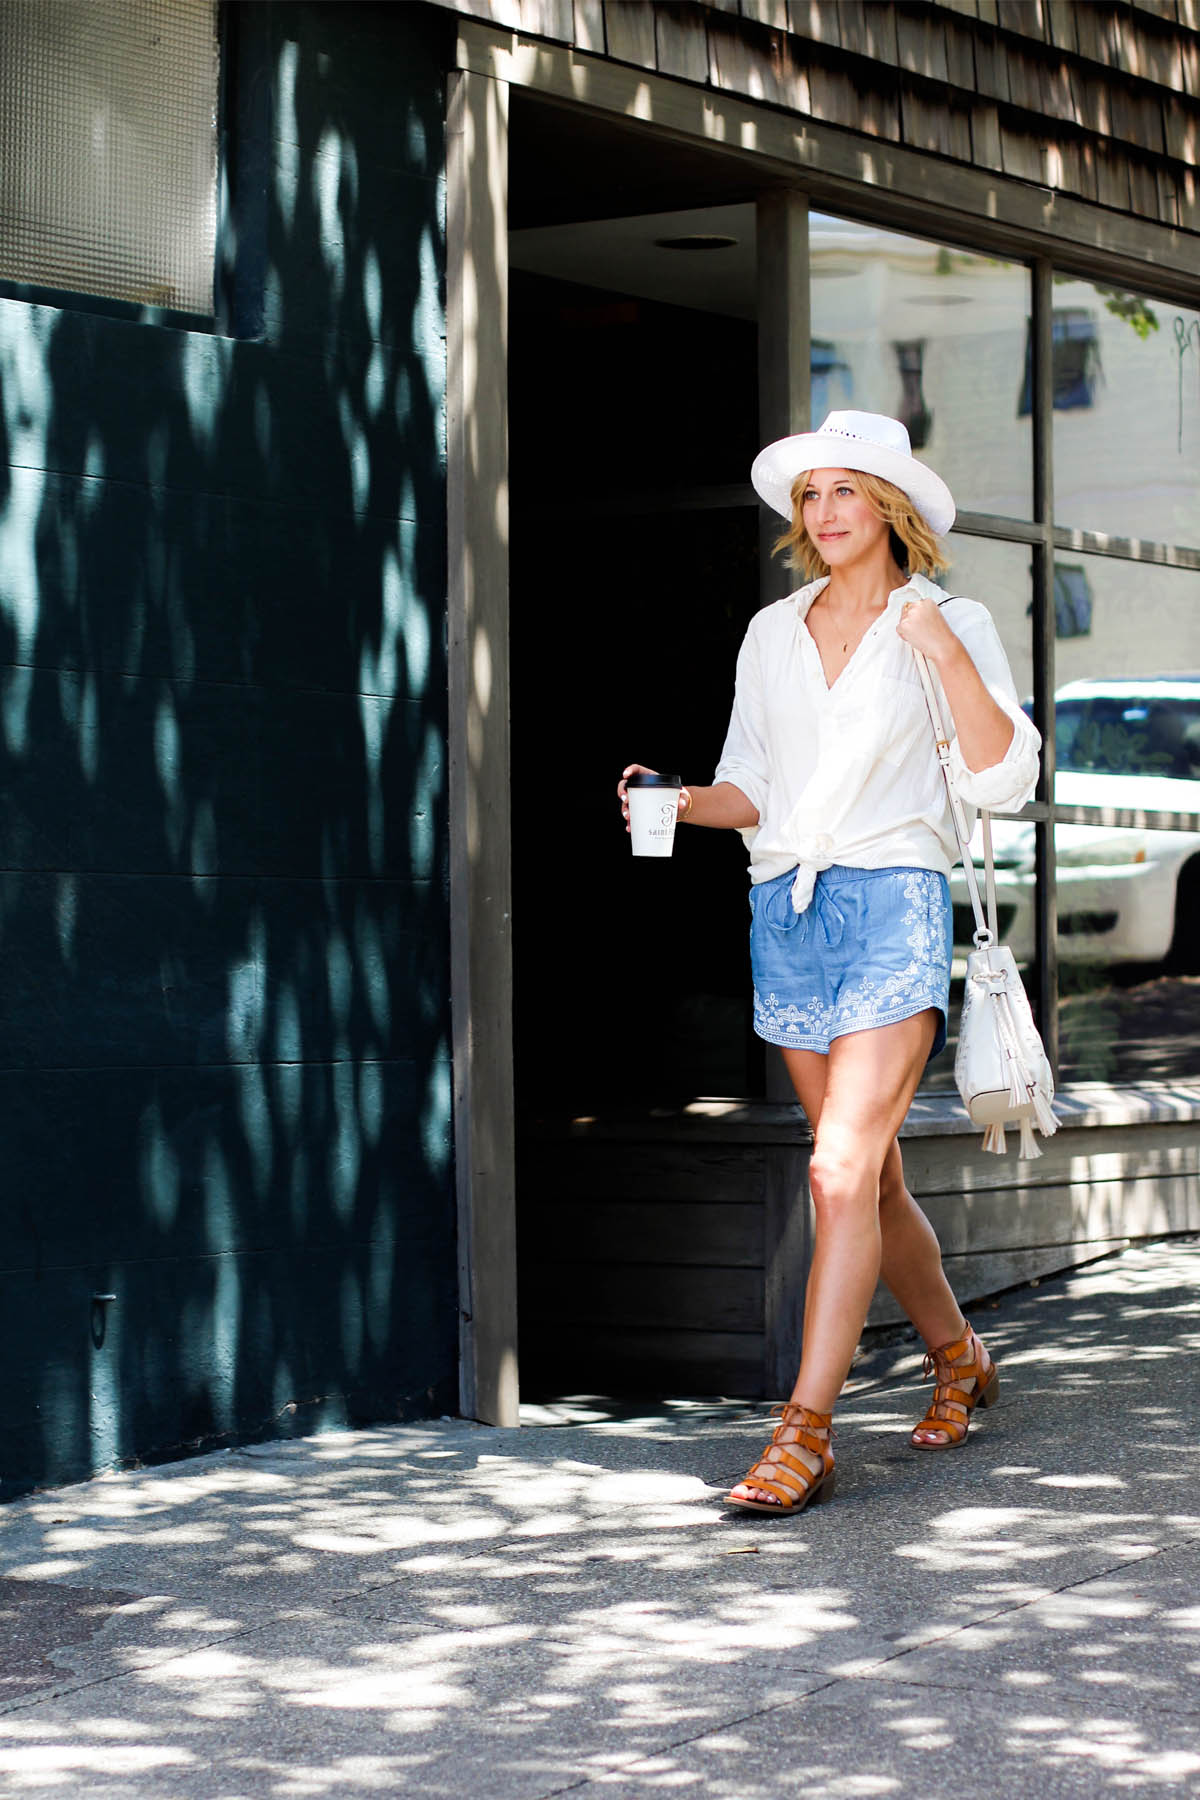 Goodnight Macaroon embroidered drawstring shorts and Free People white button-down shirt